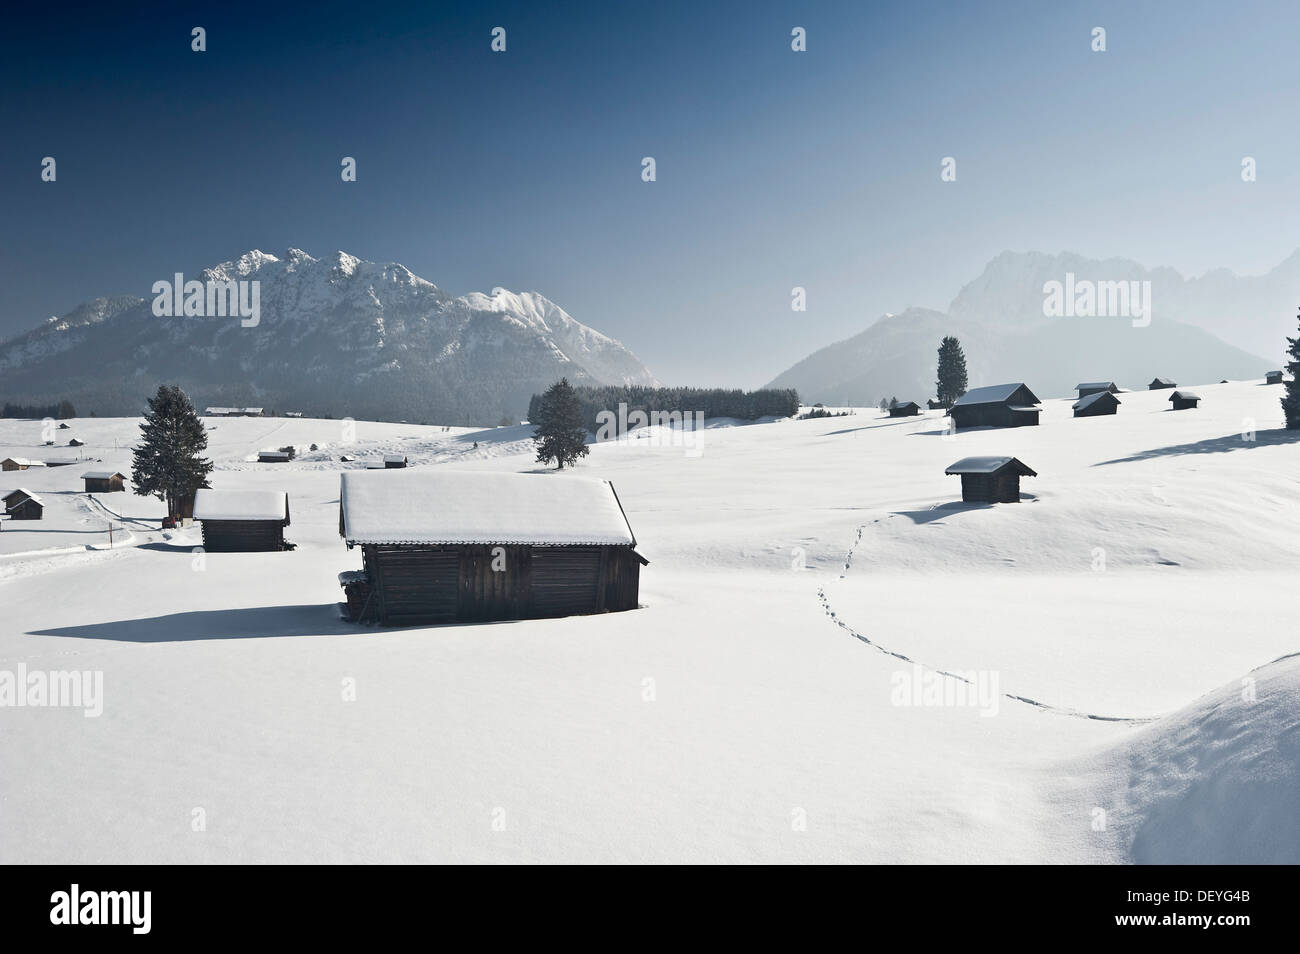 Snow-covered pastures and hay barns, Wetterstein range at back, Mittenwald, Upper Bavaria, Bavaria, Germany - Stock Image